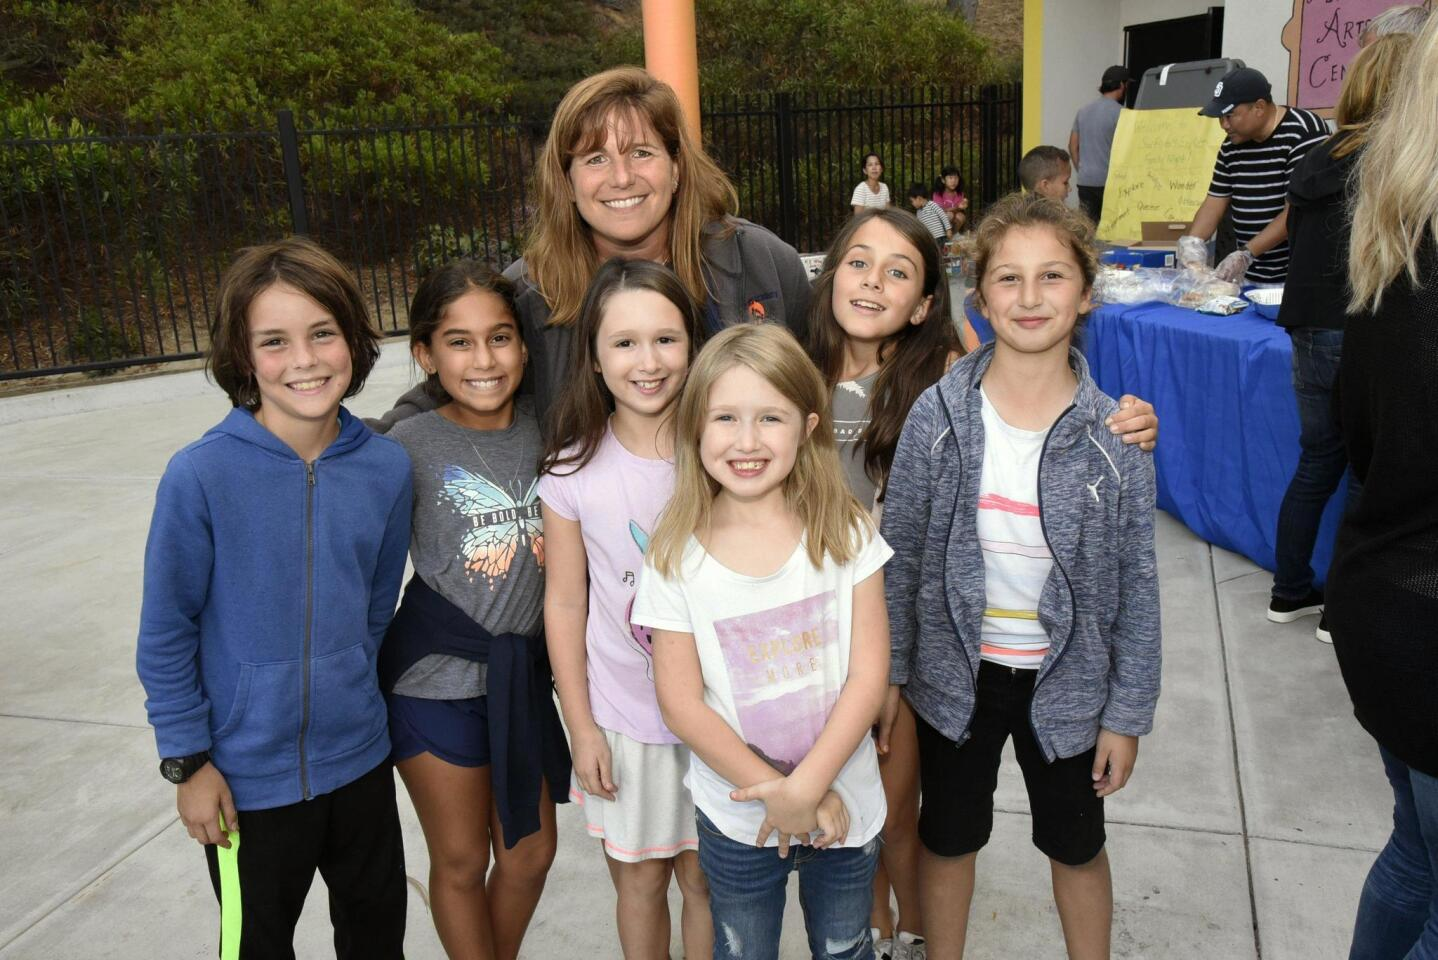 Del Mar Hills Ice Cream Social, SurfRiders Explore Engineering, and Family BBQ